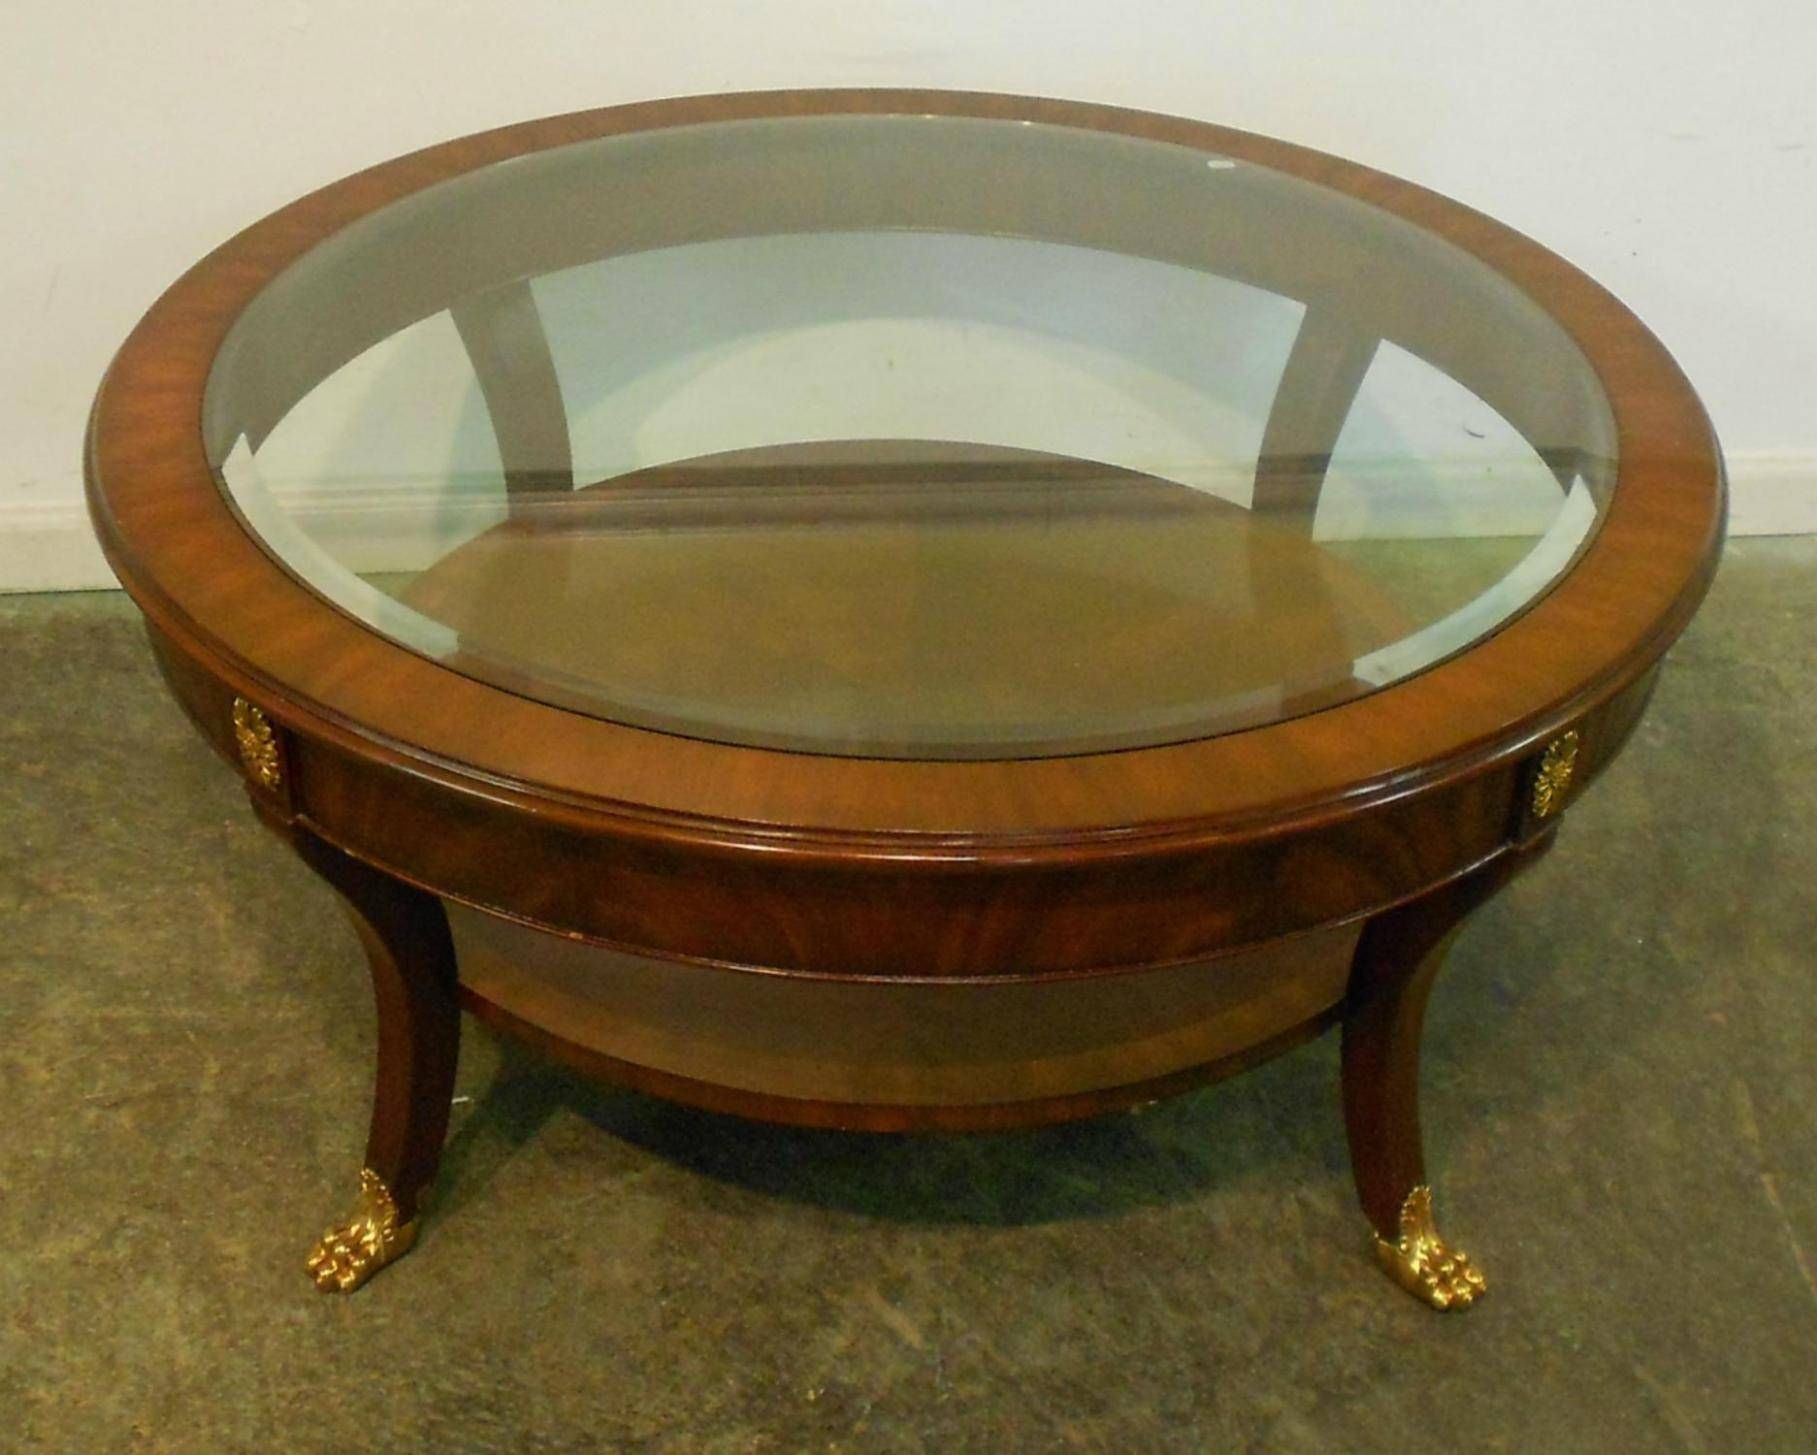 Glass Coffee Tables: Baffling Small Round Glass Top Coffee Table With Round Wood And Glass Coffee Tables (View 9 of 15)